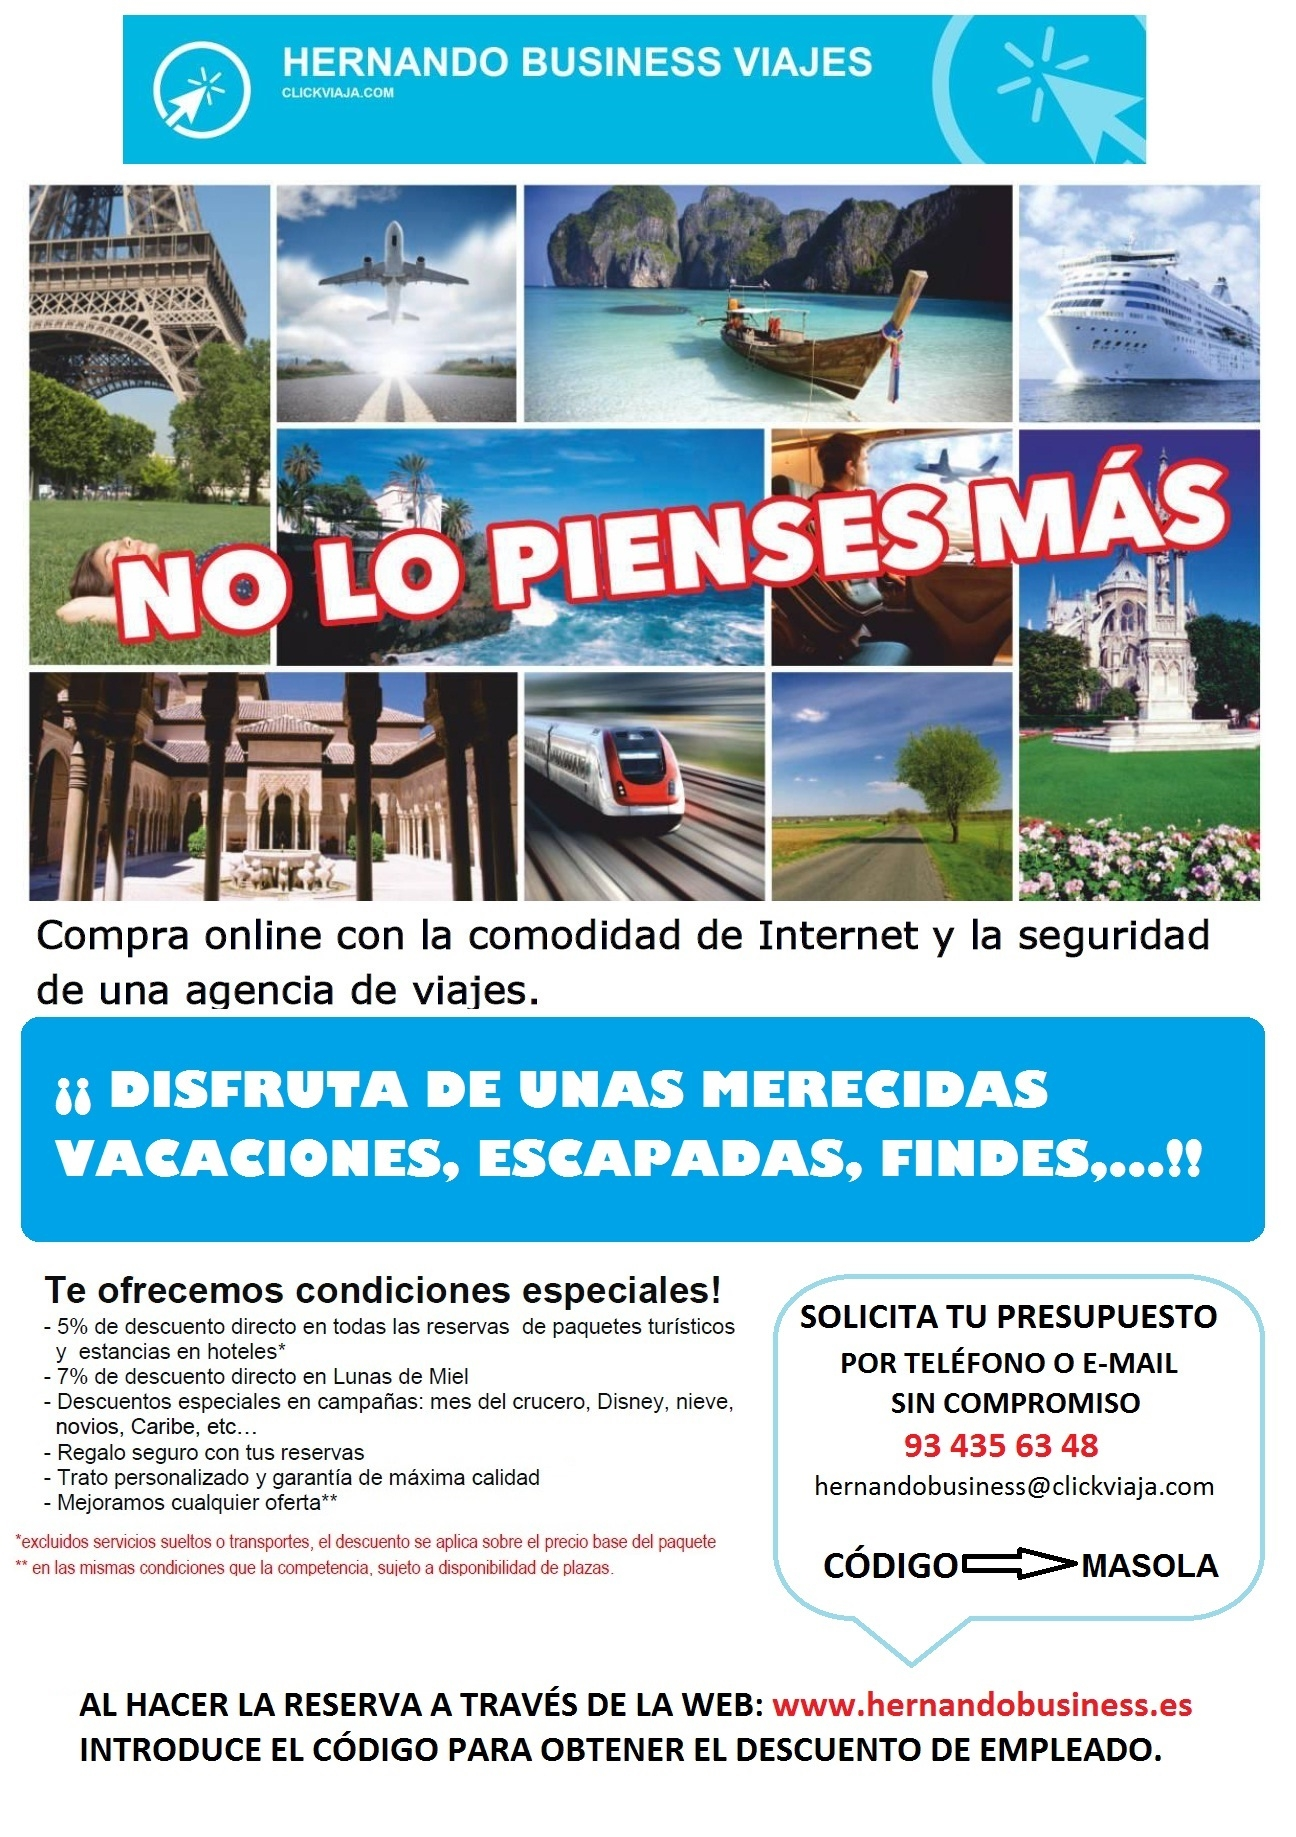 HERNANDO BUSINESS VIAJES